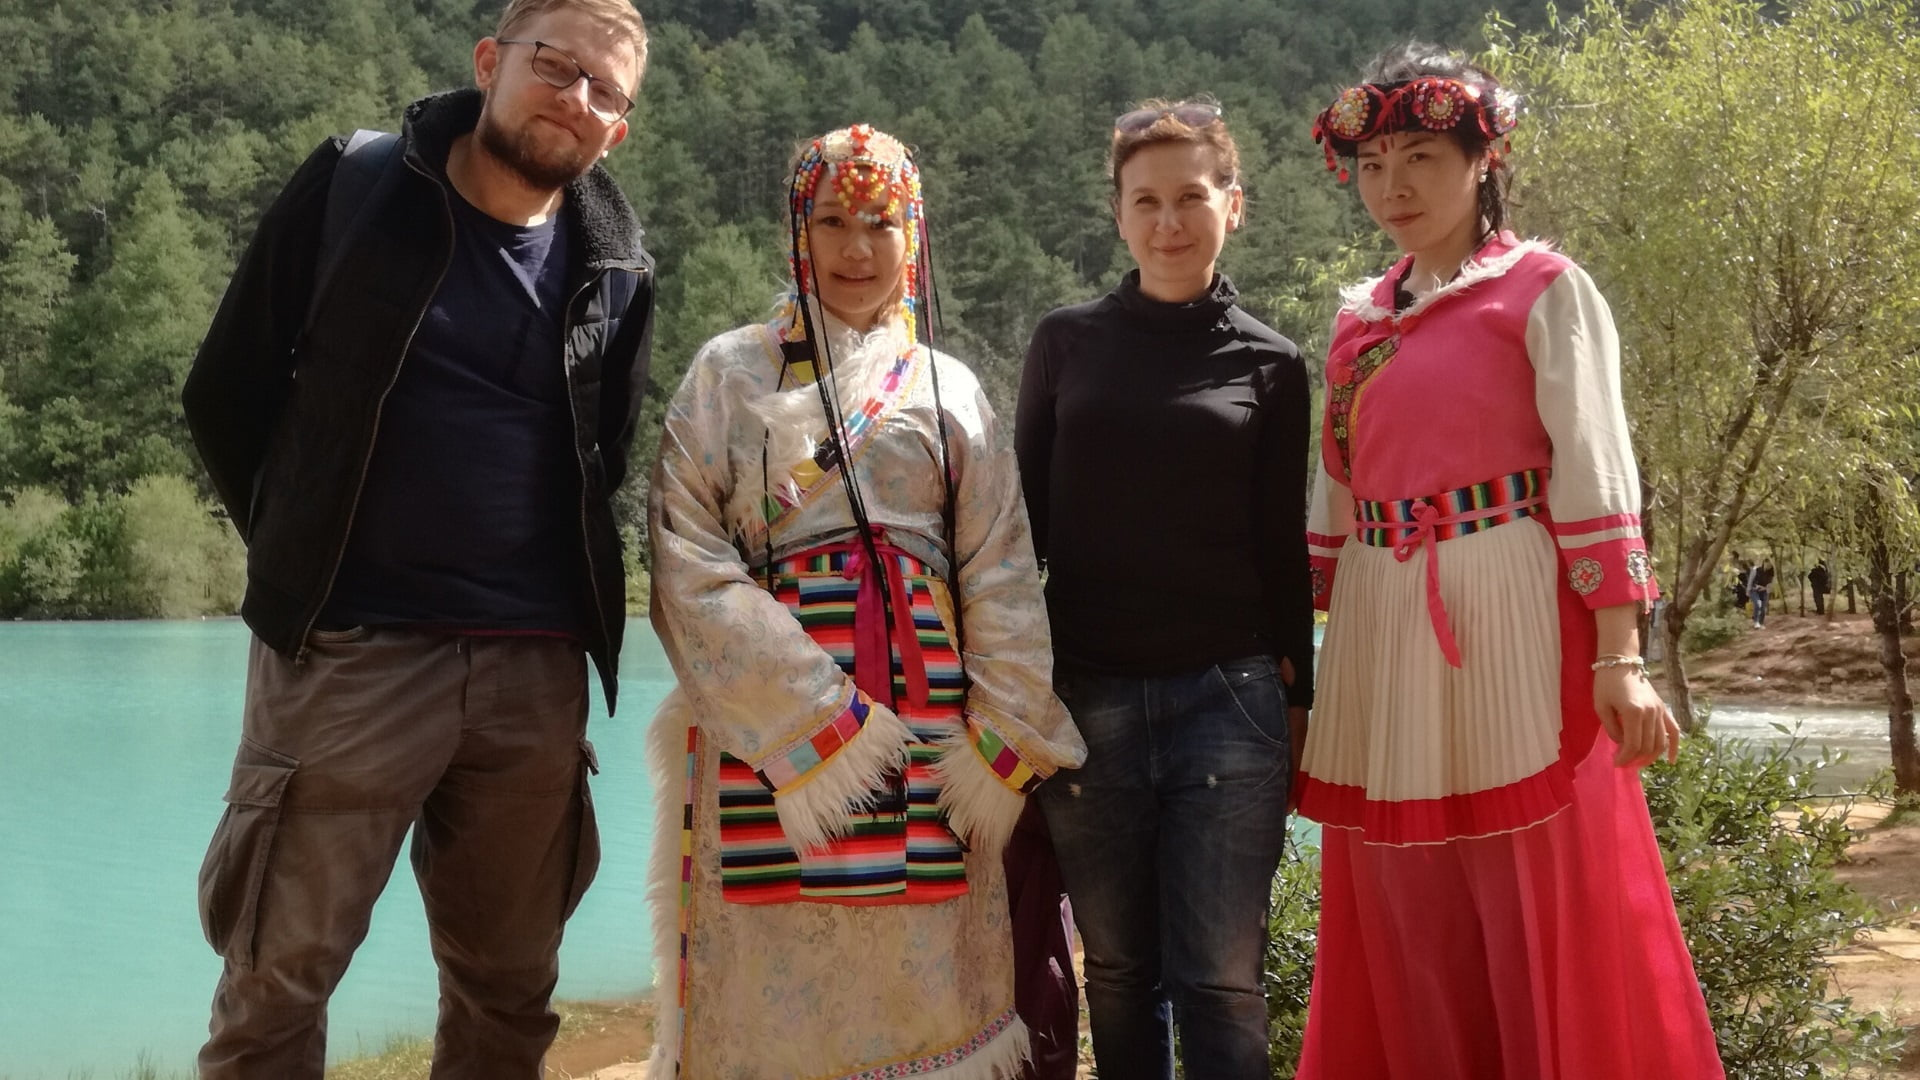 Two employees of Workshops of Culture pose during their trip to China pose with women in traditional costumes.